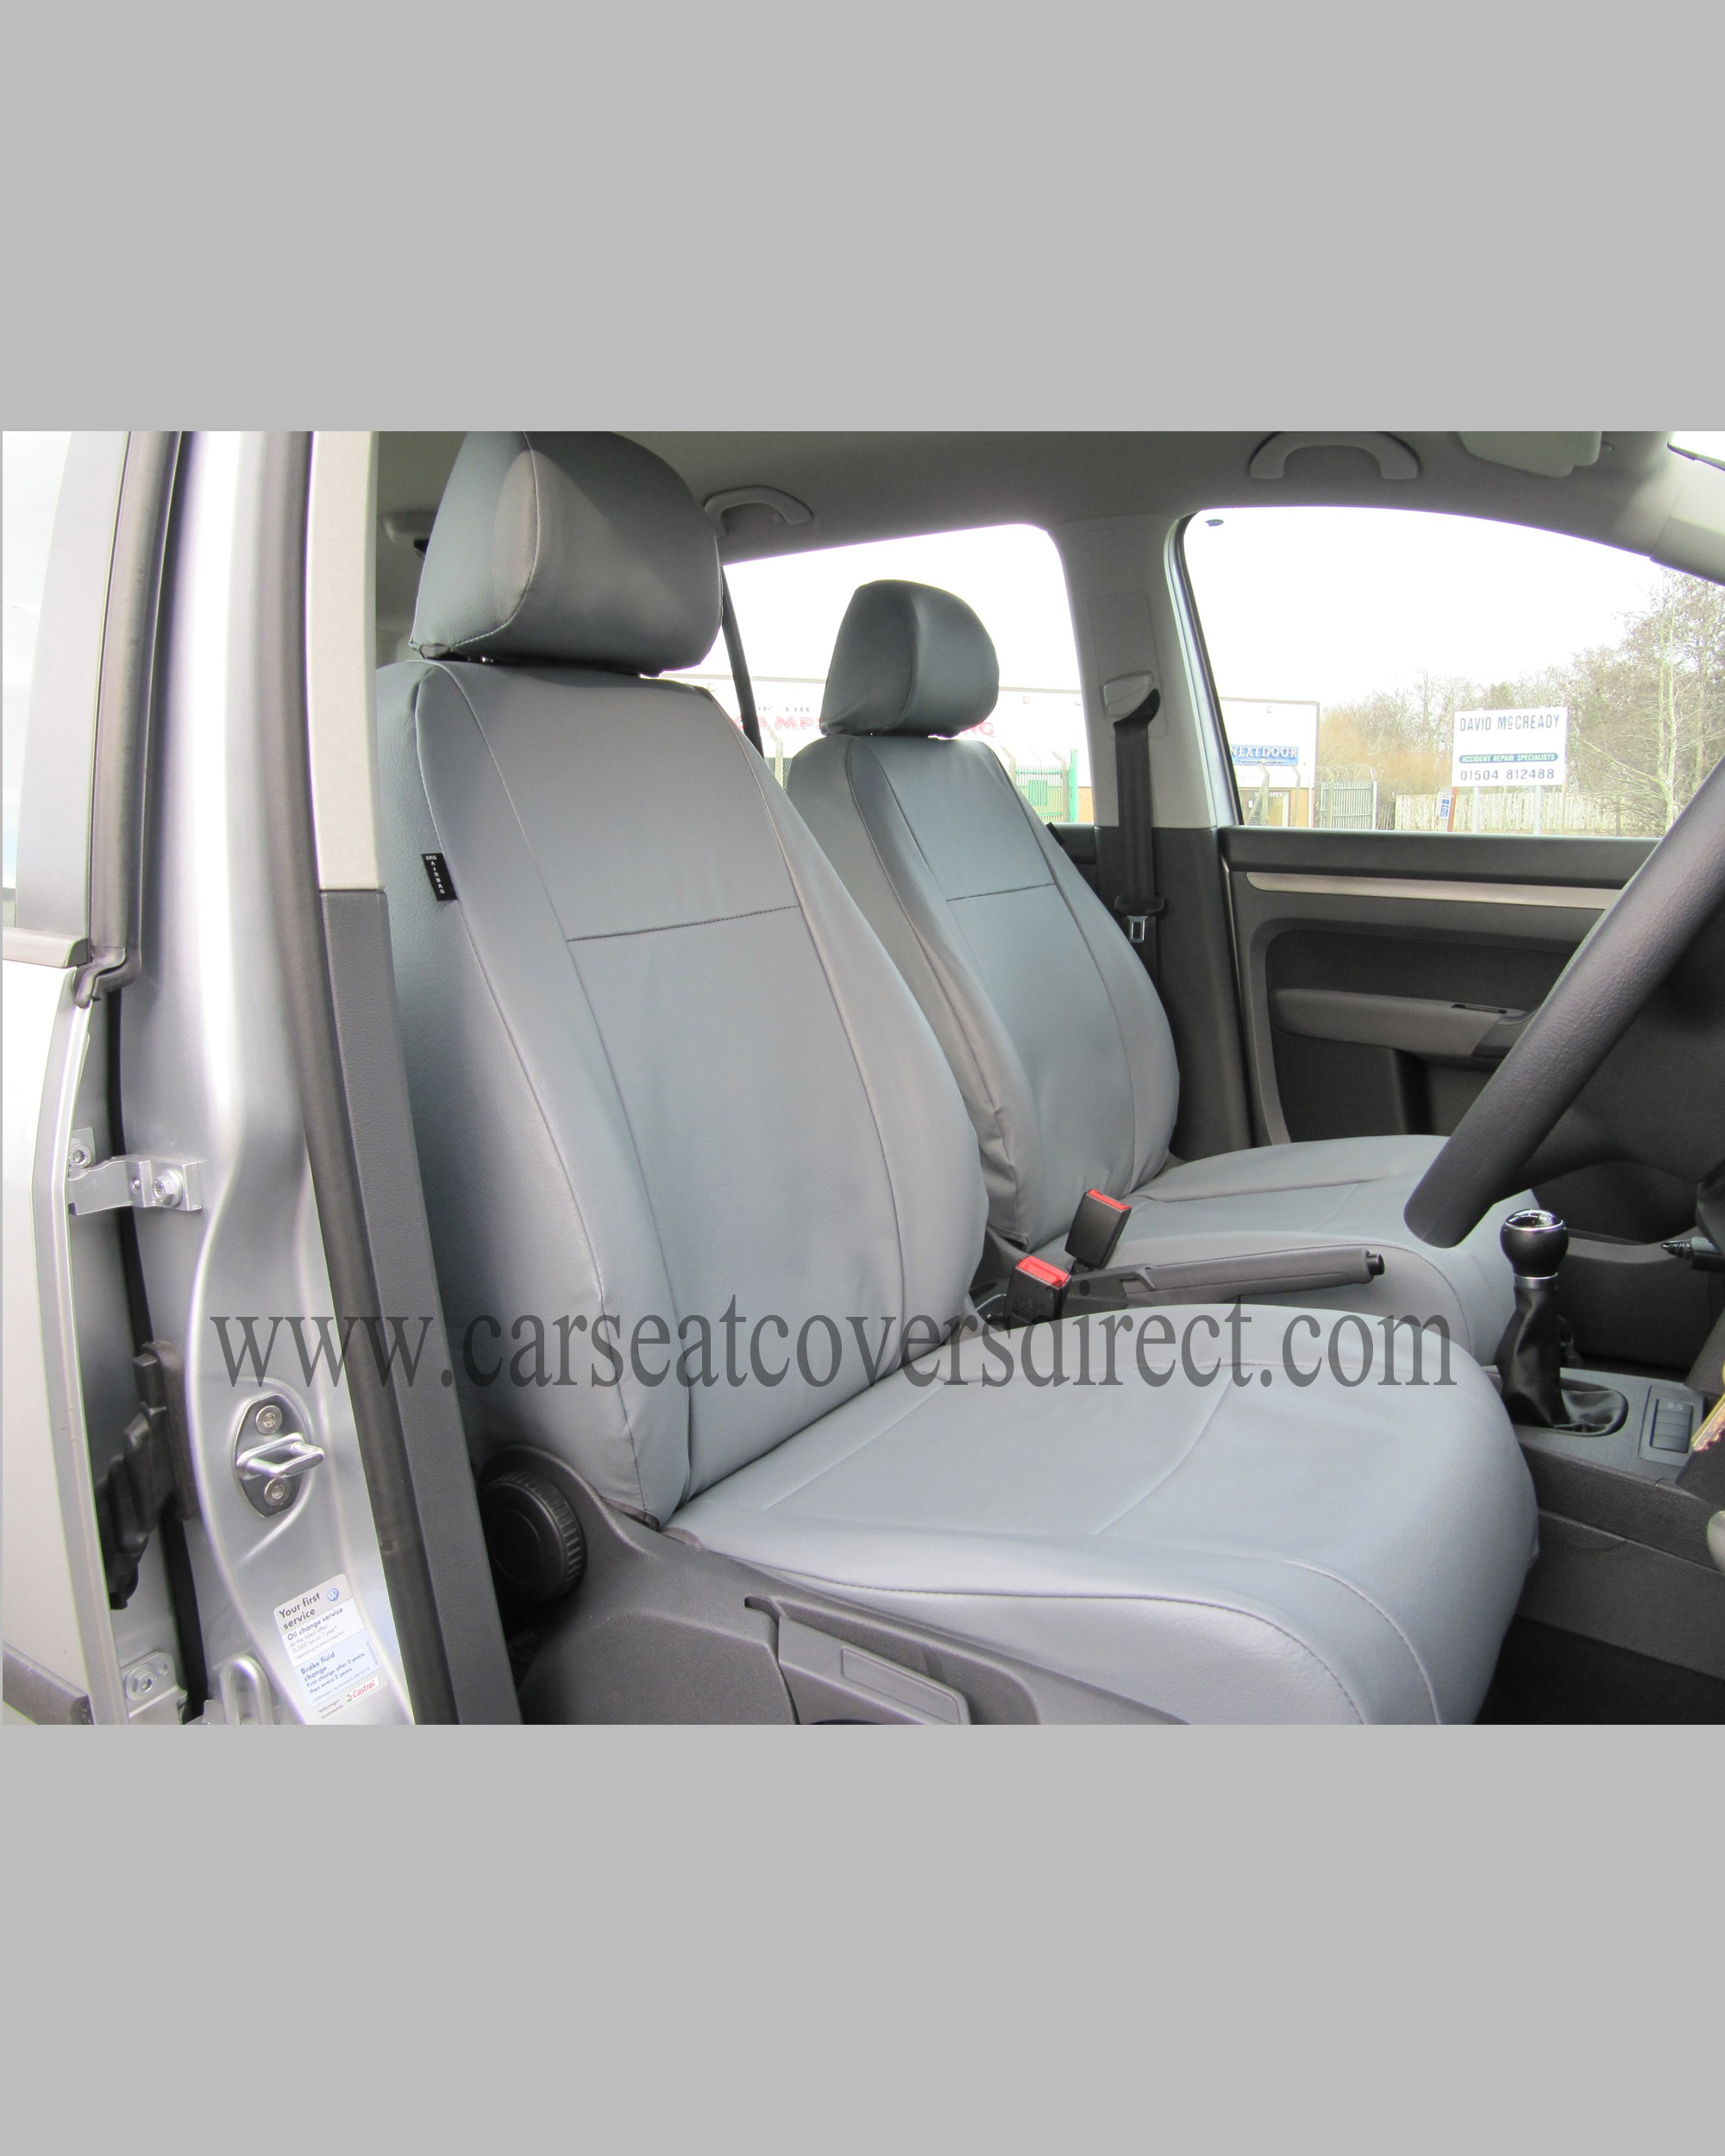 volkswagen vw touran grey seat covers front seats only custom car seat covers custom. Black Bedroom Furniture Sets. Home Design Ideas